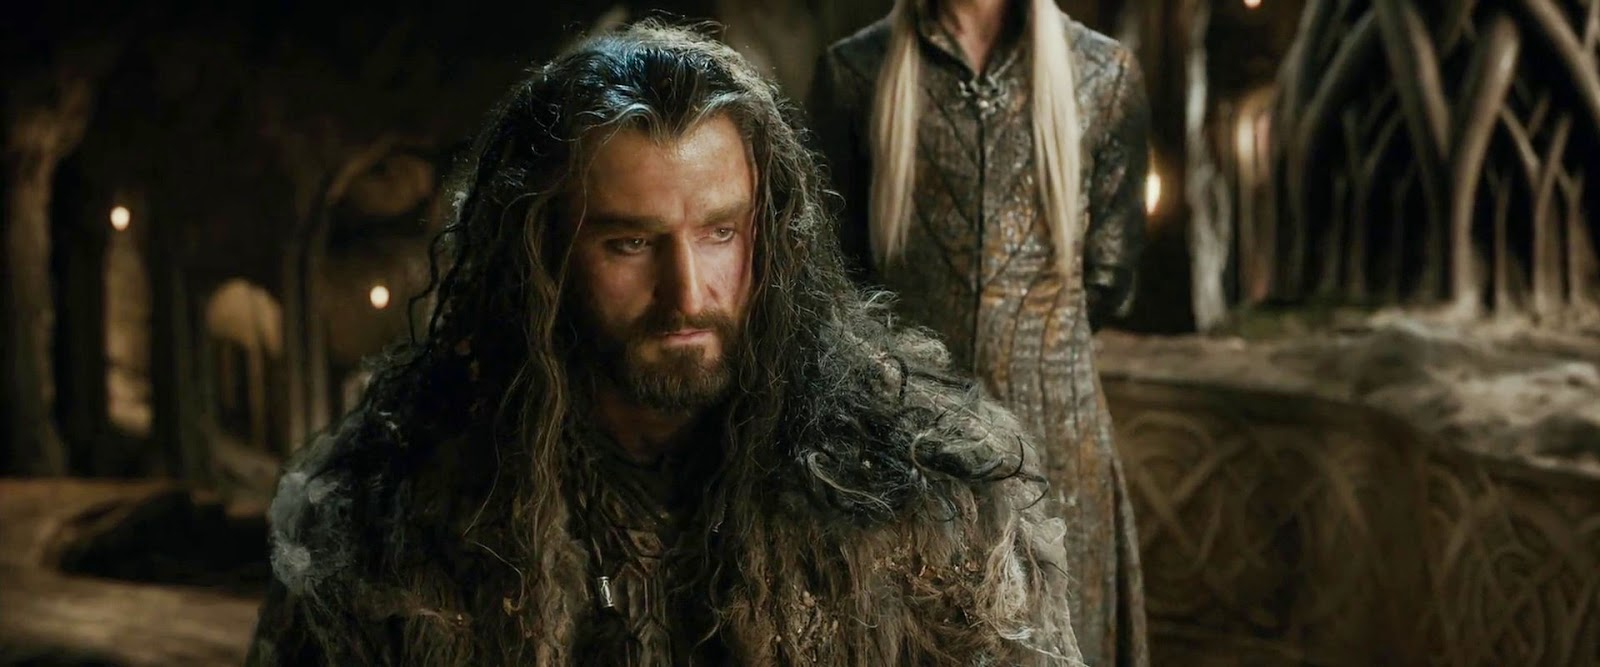 The Hobbit: The Desolation Of Smaug (2013) S3 s The Hobbit: The Desolation Of Smaug (2013)